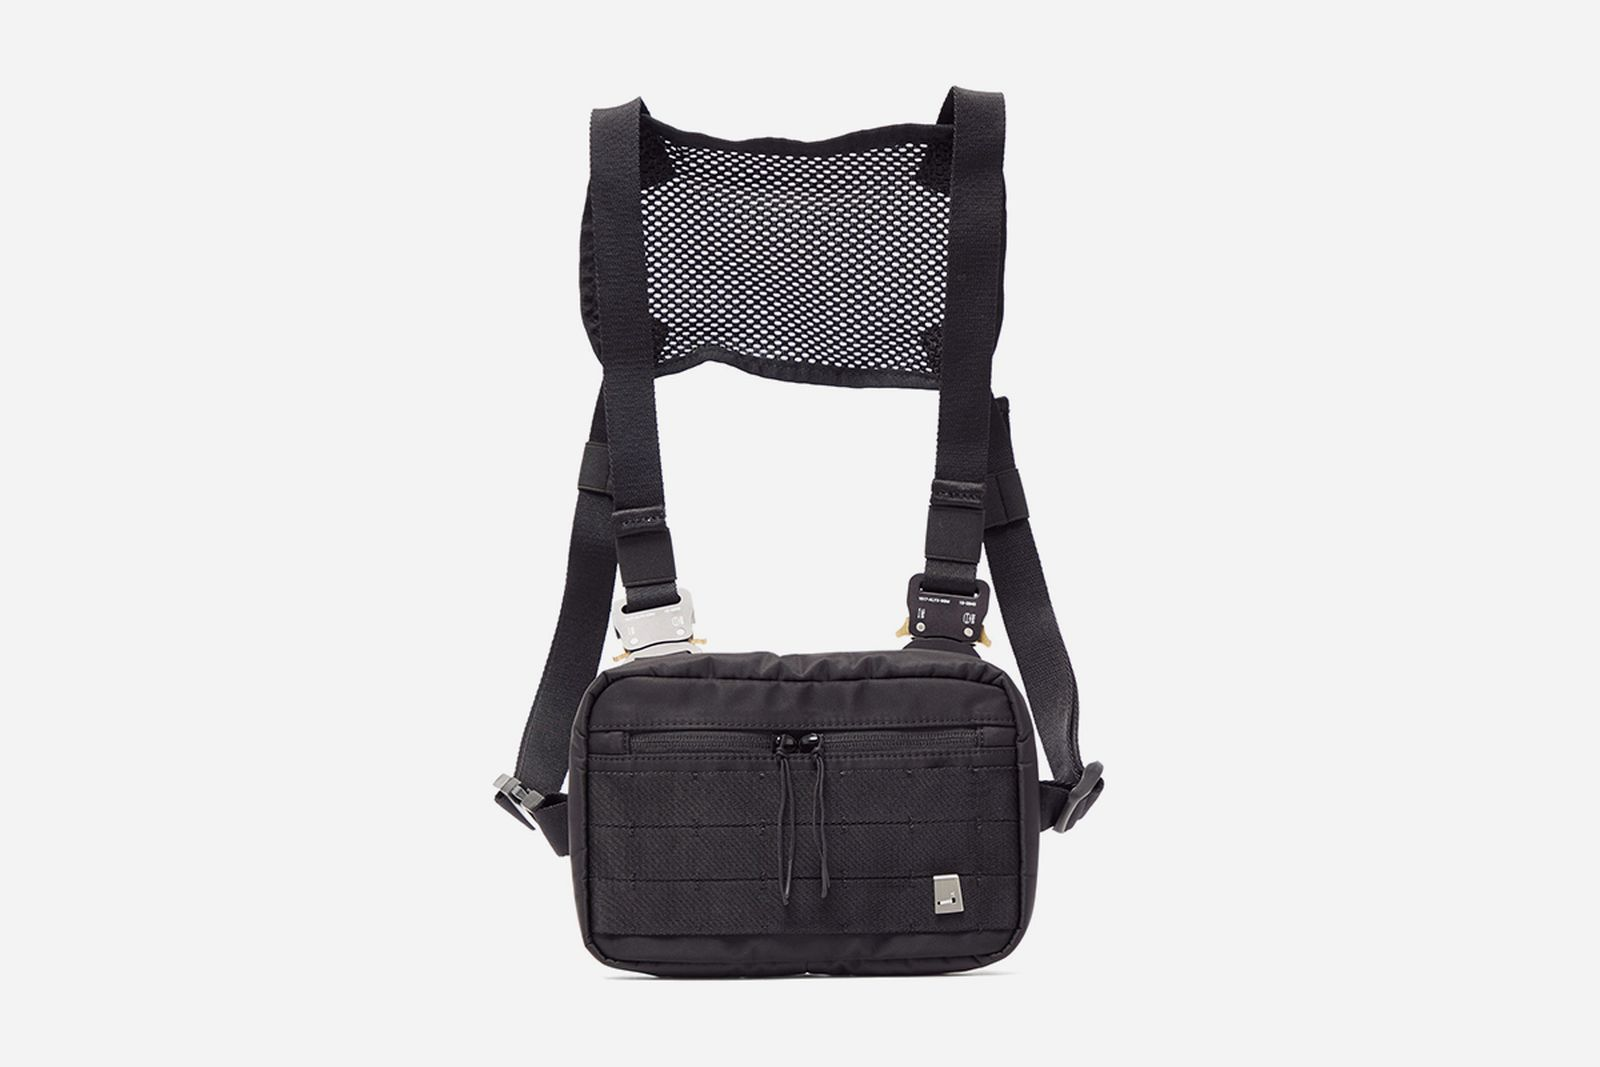 1017 ALYX 9SM Harness Technical Bag